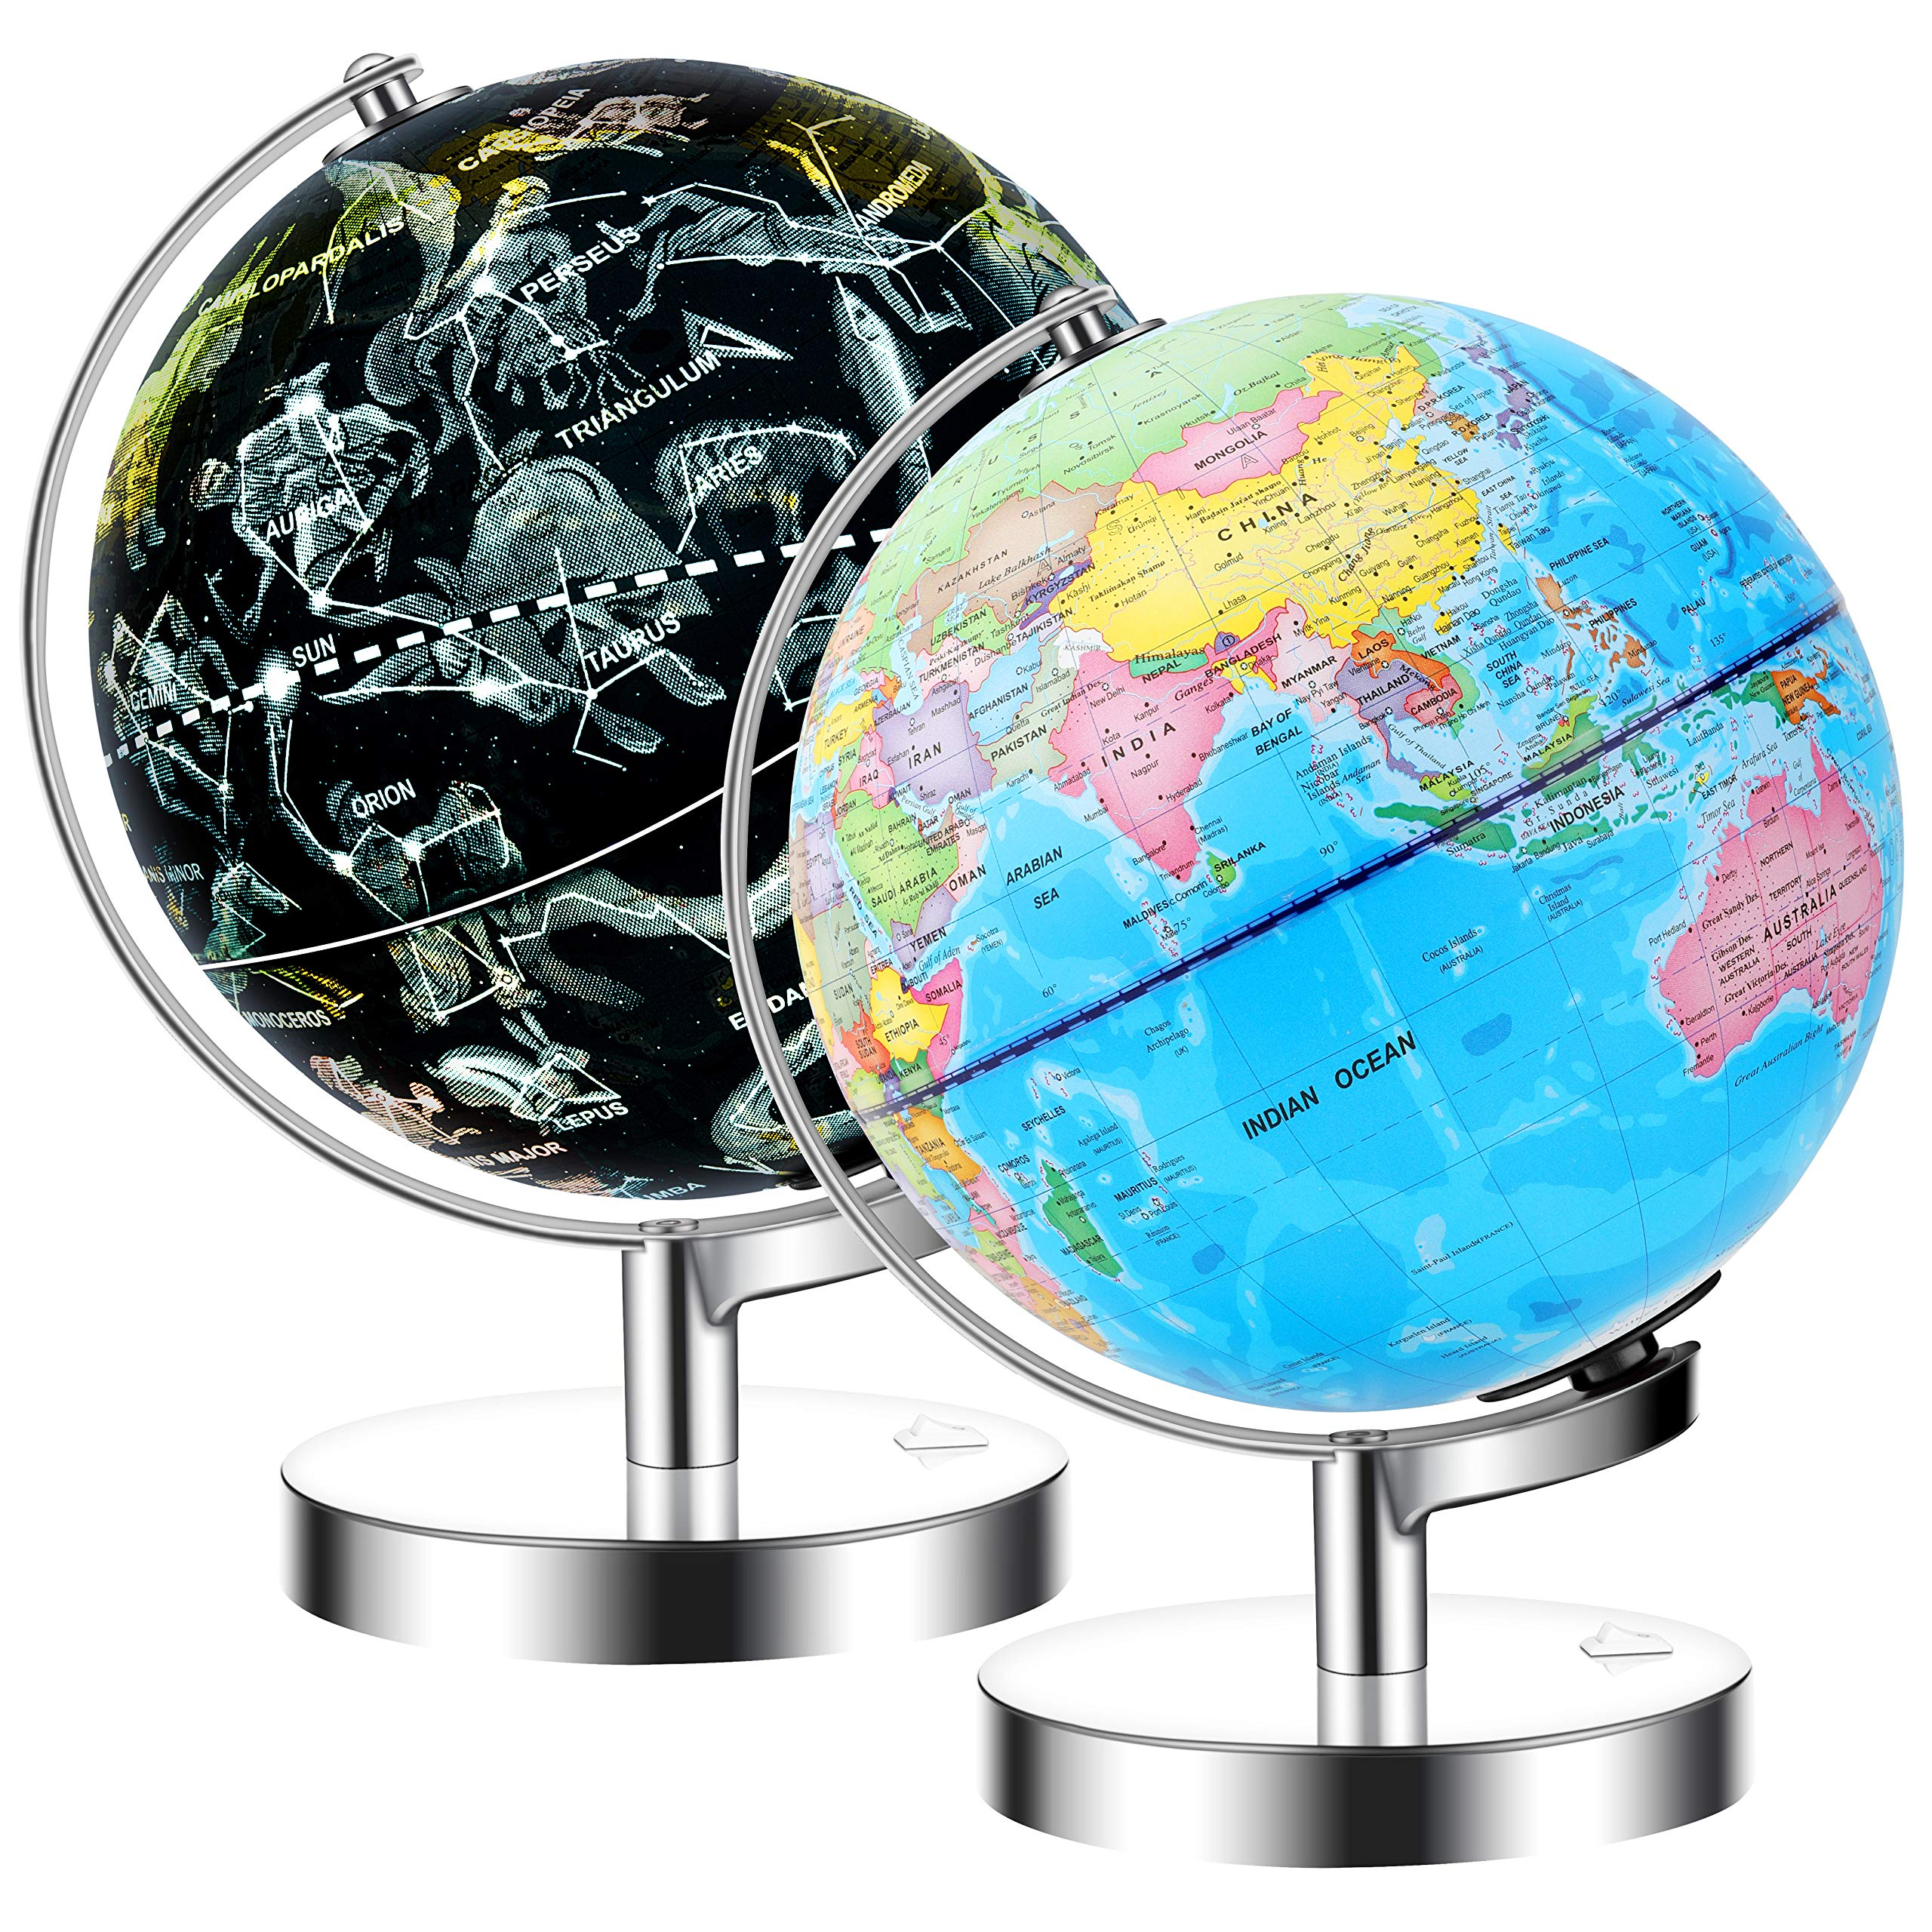 JARBO 8 inches Illuminated Constellation World Globe for Kids with Stand, Built-in LED Light Illuminates for Night View of Constellation, Learning Gift Detailed Globe for Kids, Powered by Battery